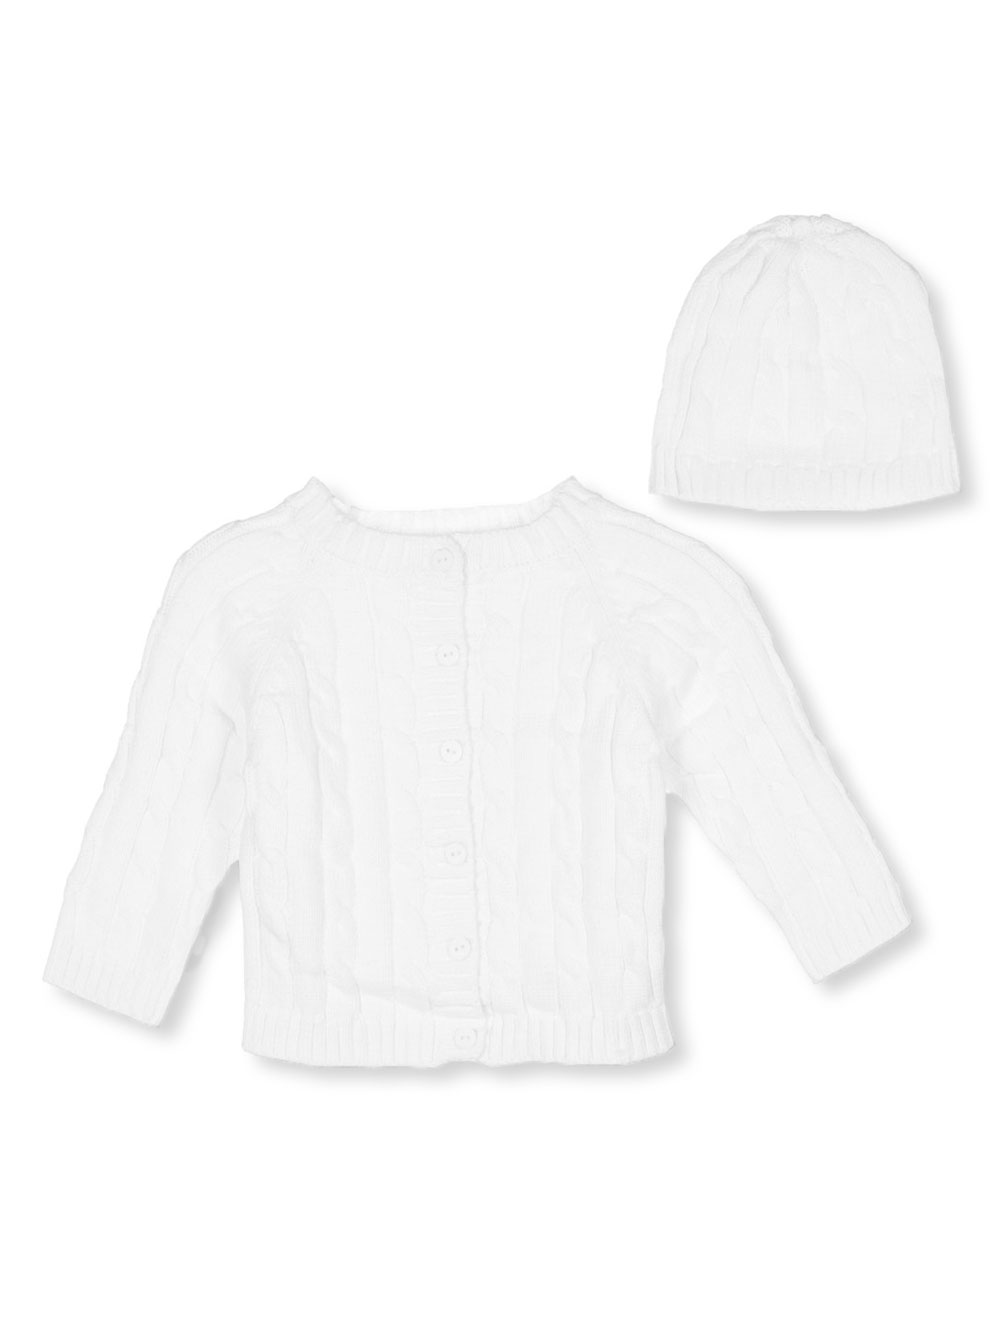 Image of Baby Dove Cable Knit Cardigan  Beanie Set Sizes 0M  9M